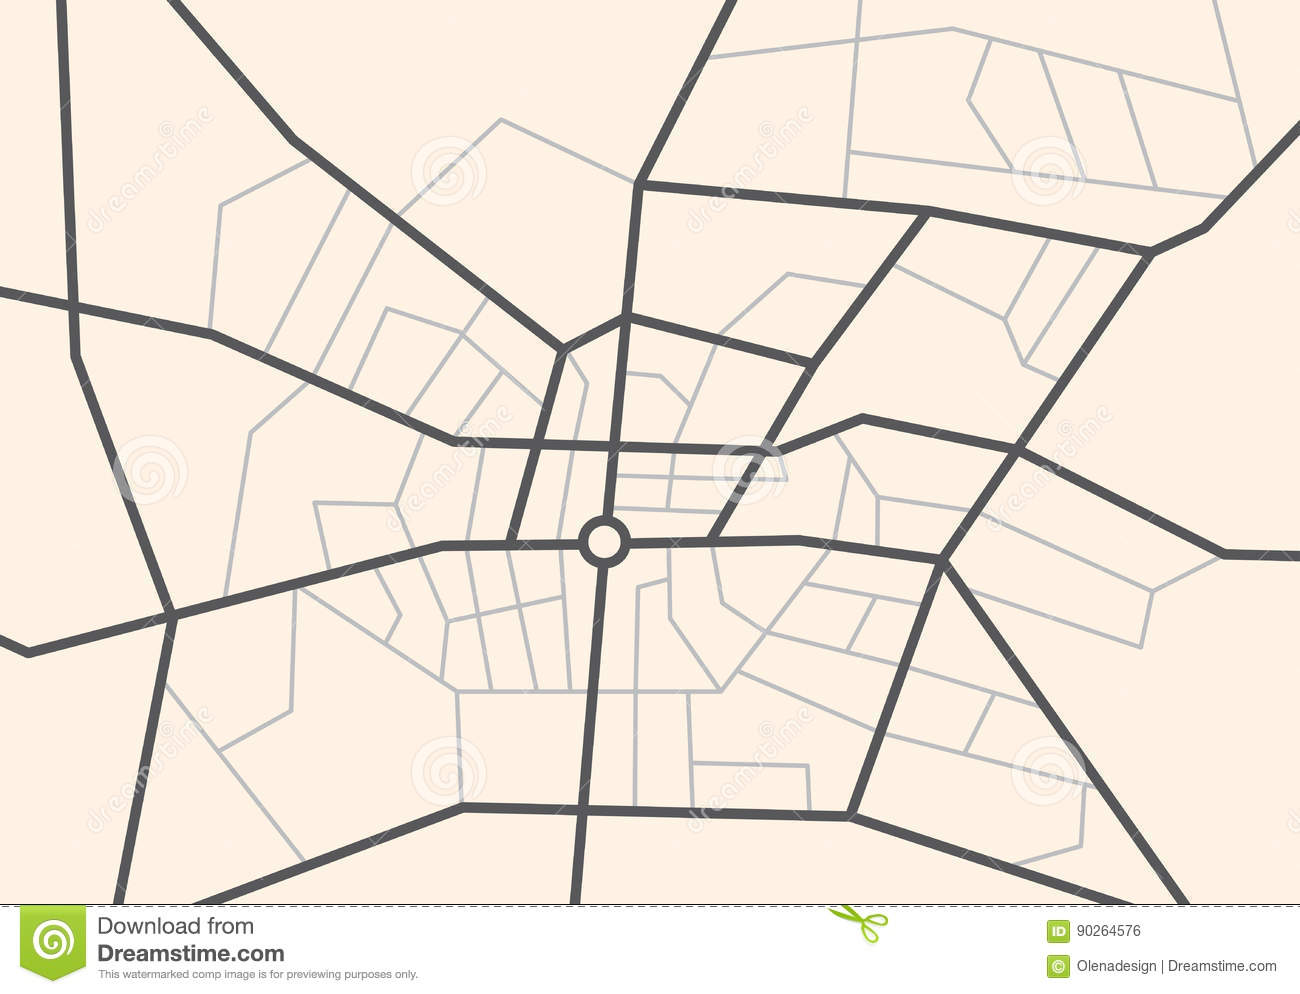 Streets on the city map - vector scheme